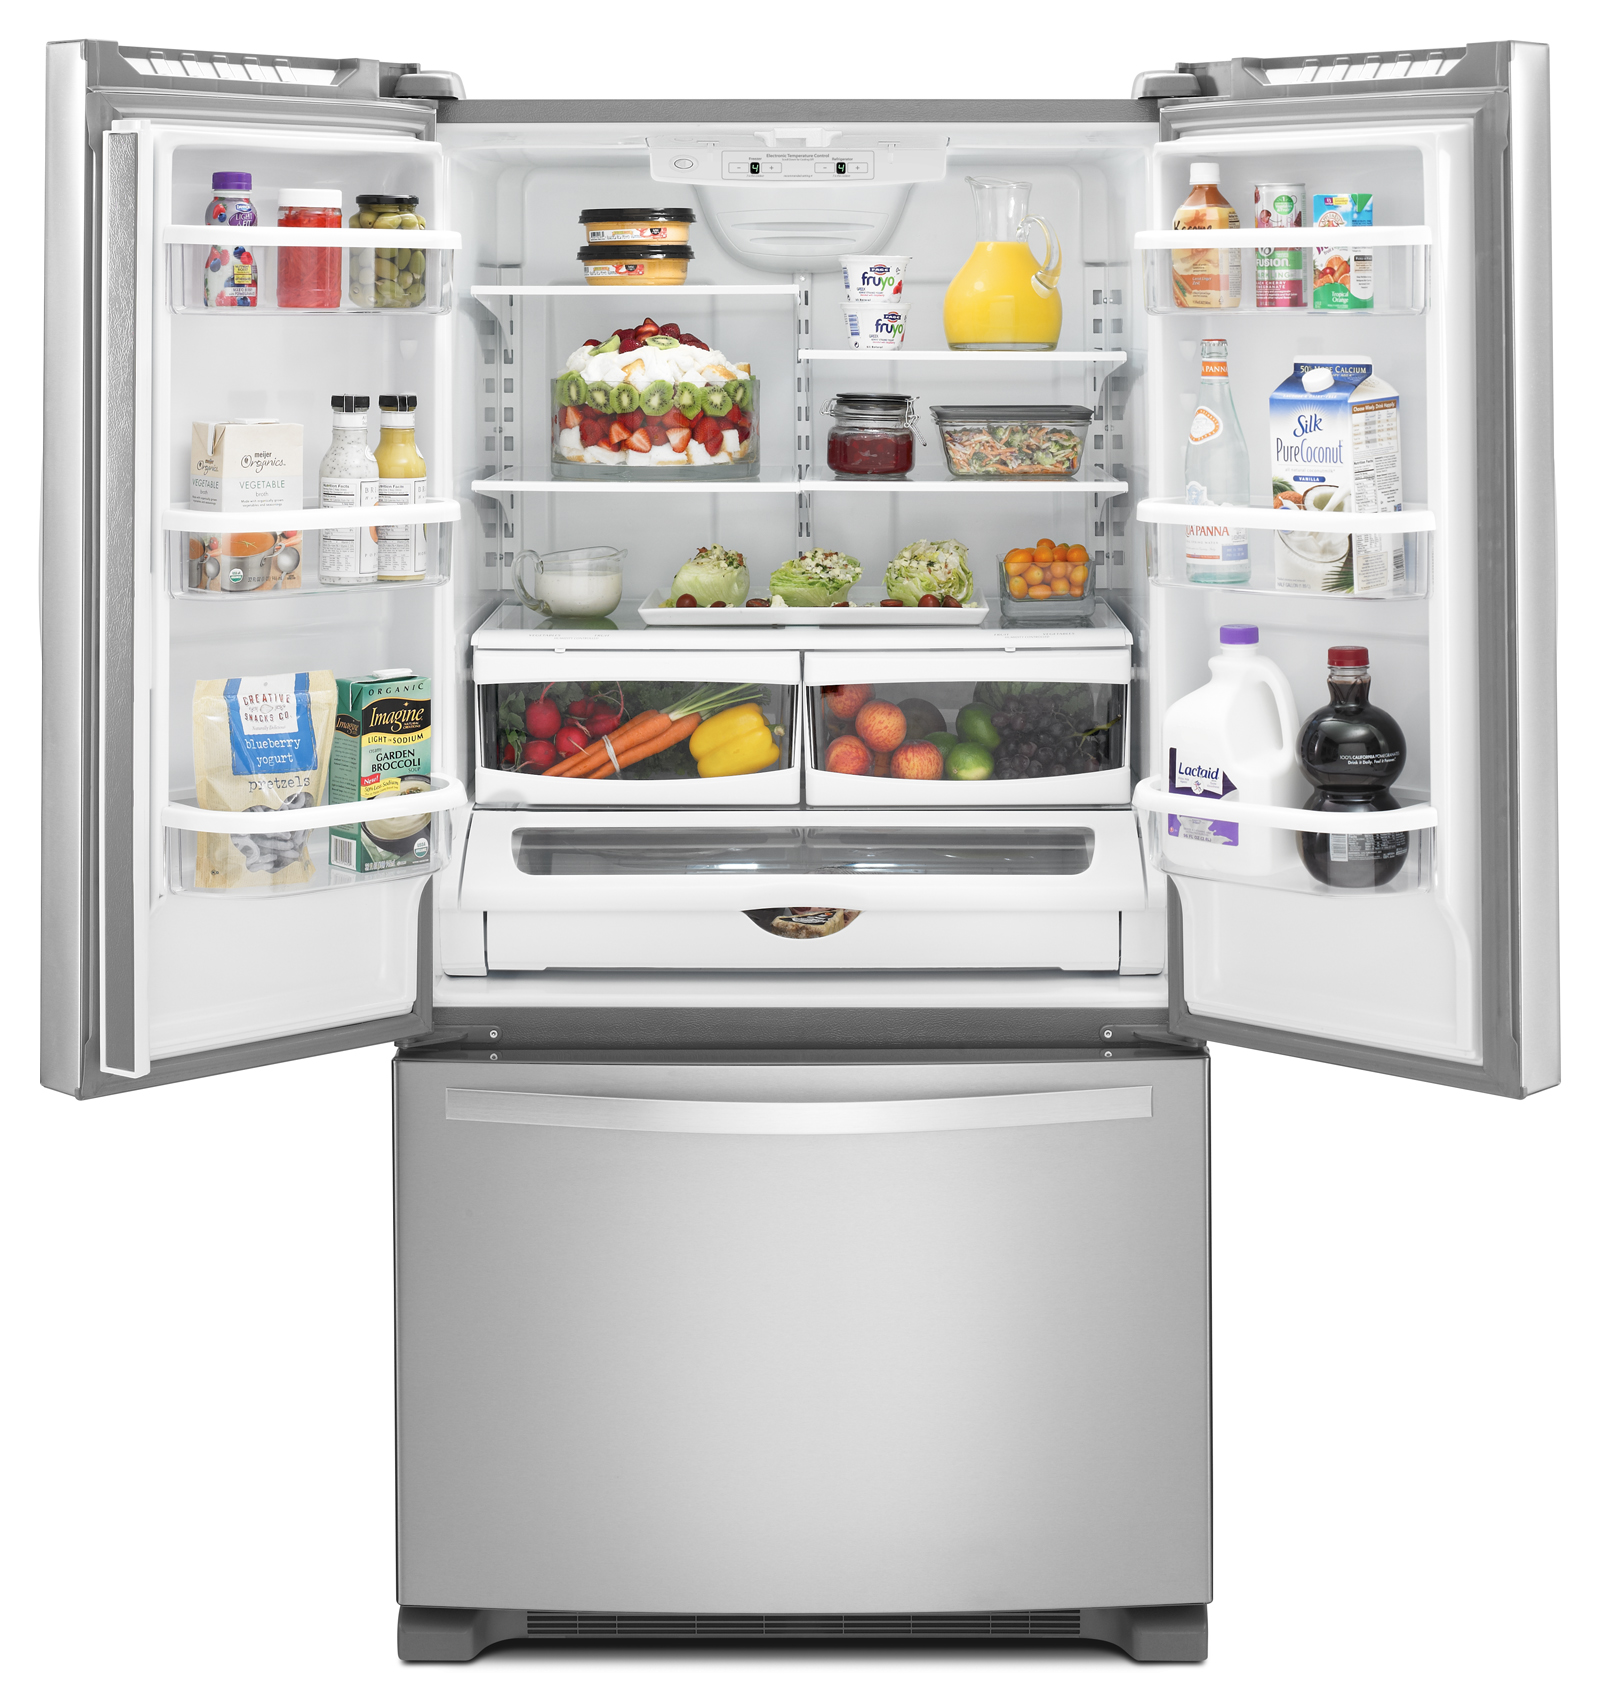 Whirlpool 24.8 cu. ft. French Door Refrigerator  - Stainless Steel